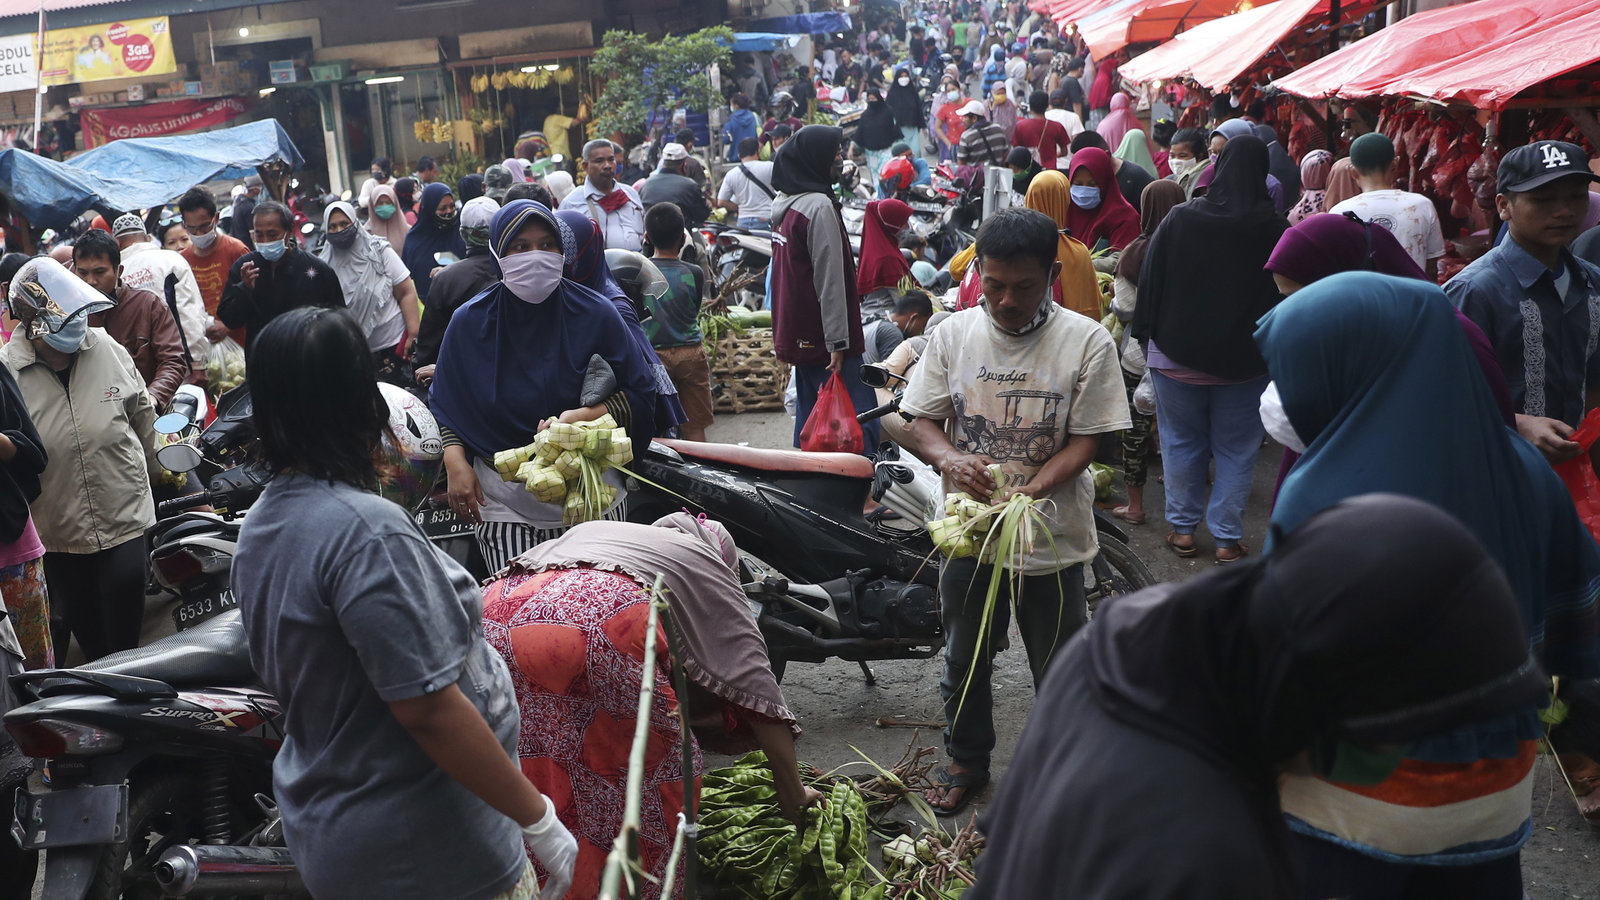 Indonesians Prepare For Eid Holiday Amid Concerns Over Spread Of COVID-19